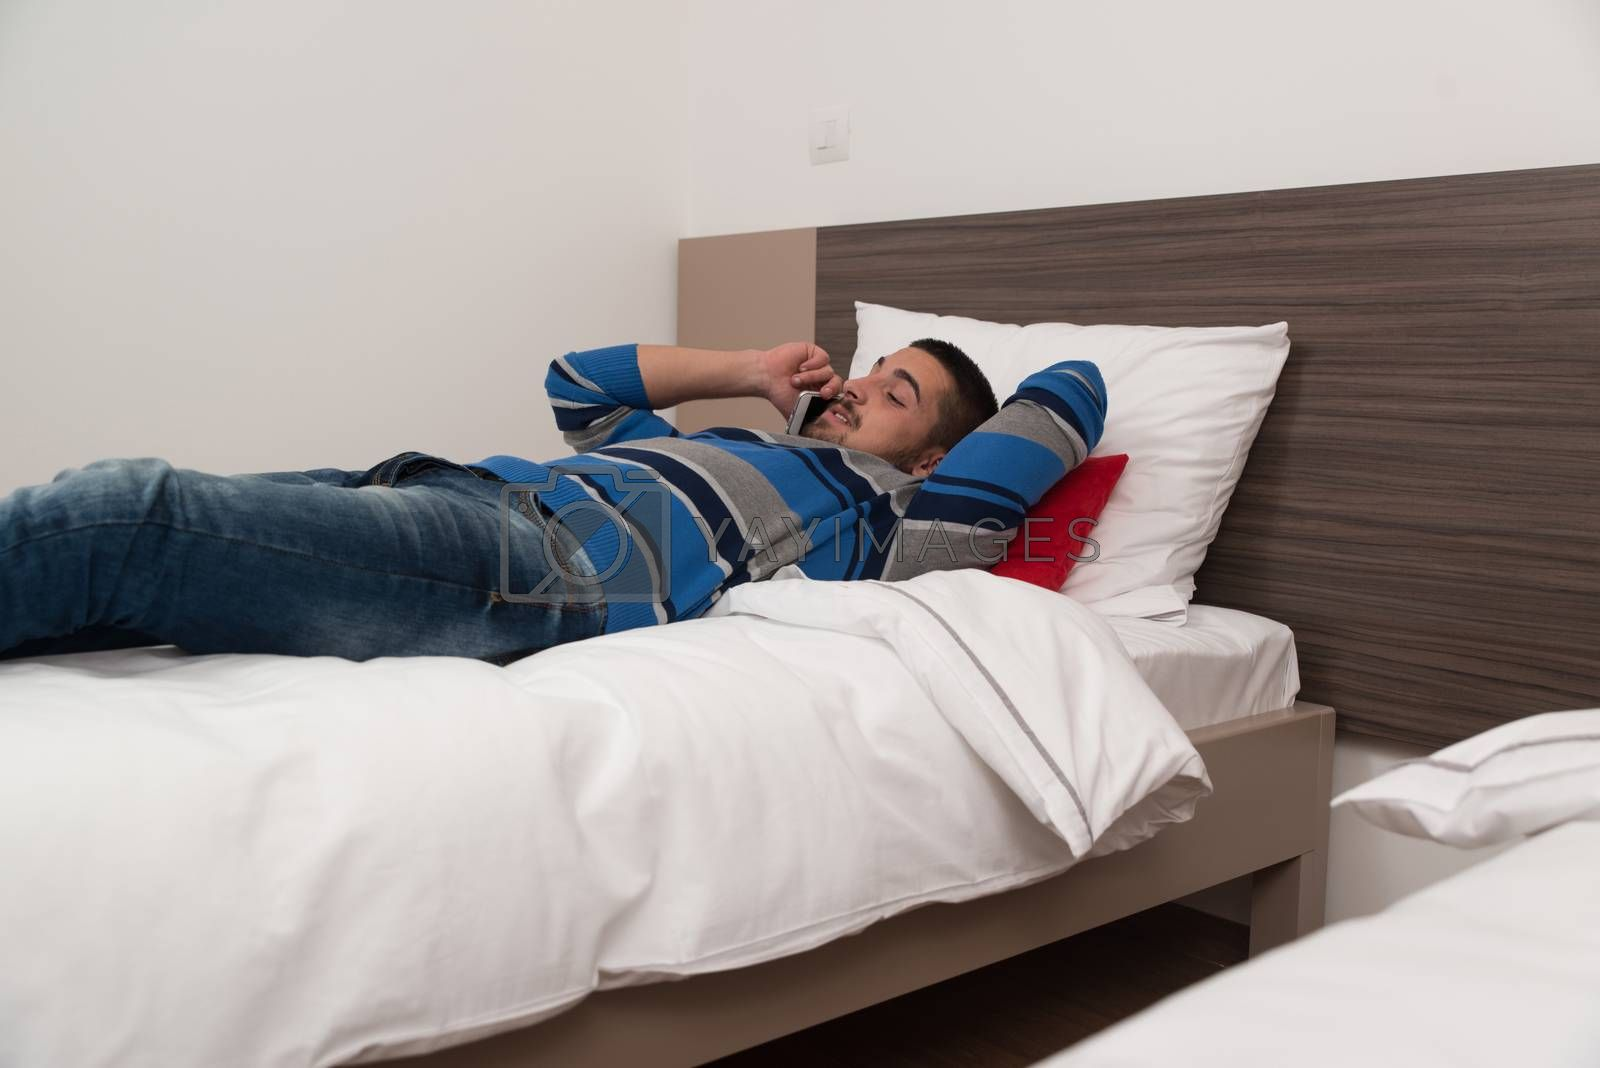 Young Man Lying On Bed And Having Fun On Phone In Bedroom